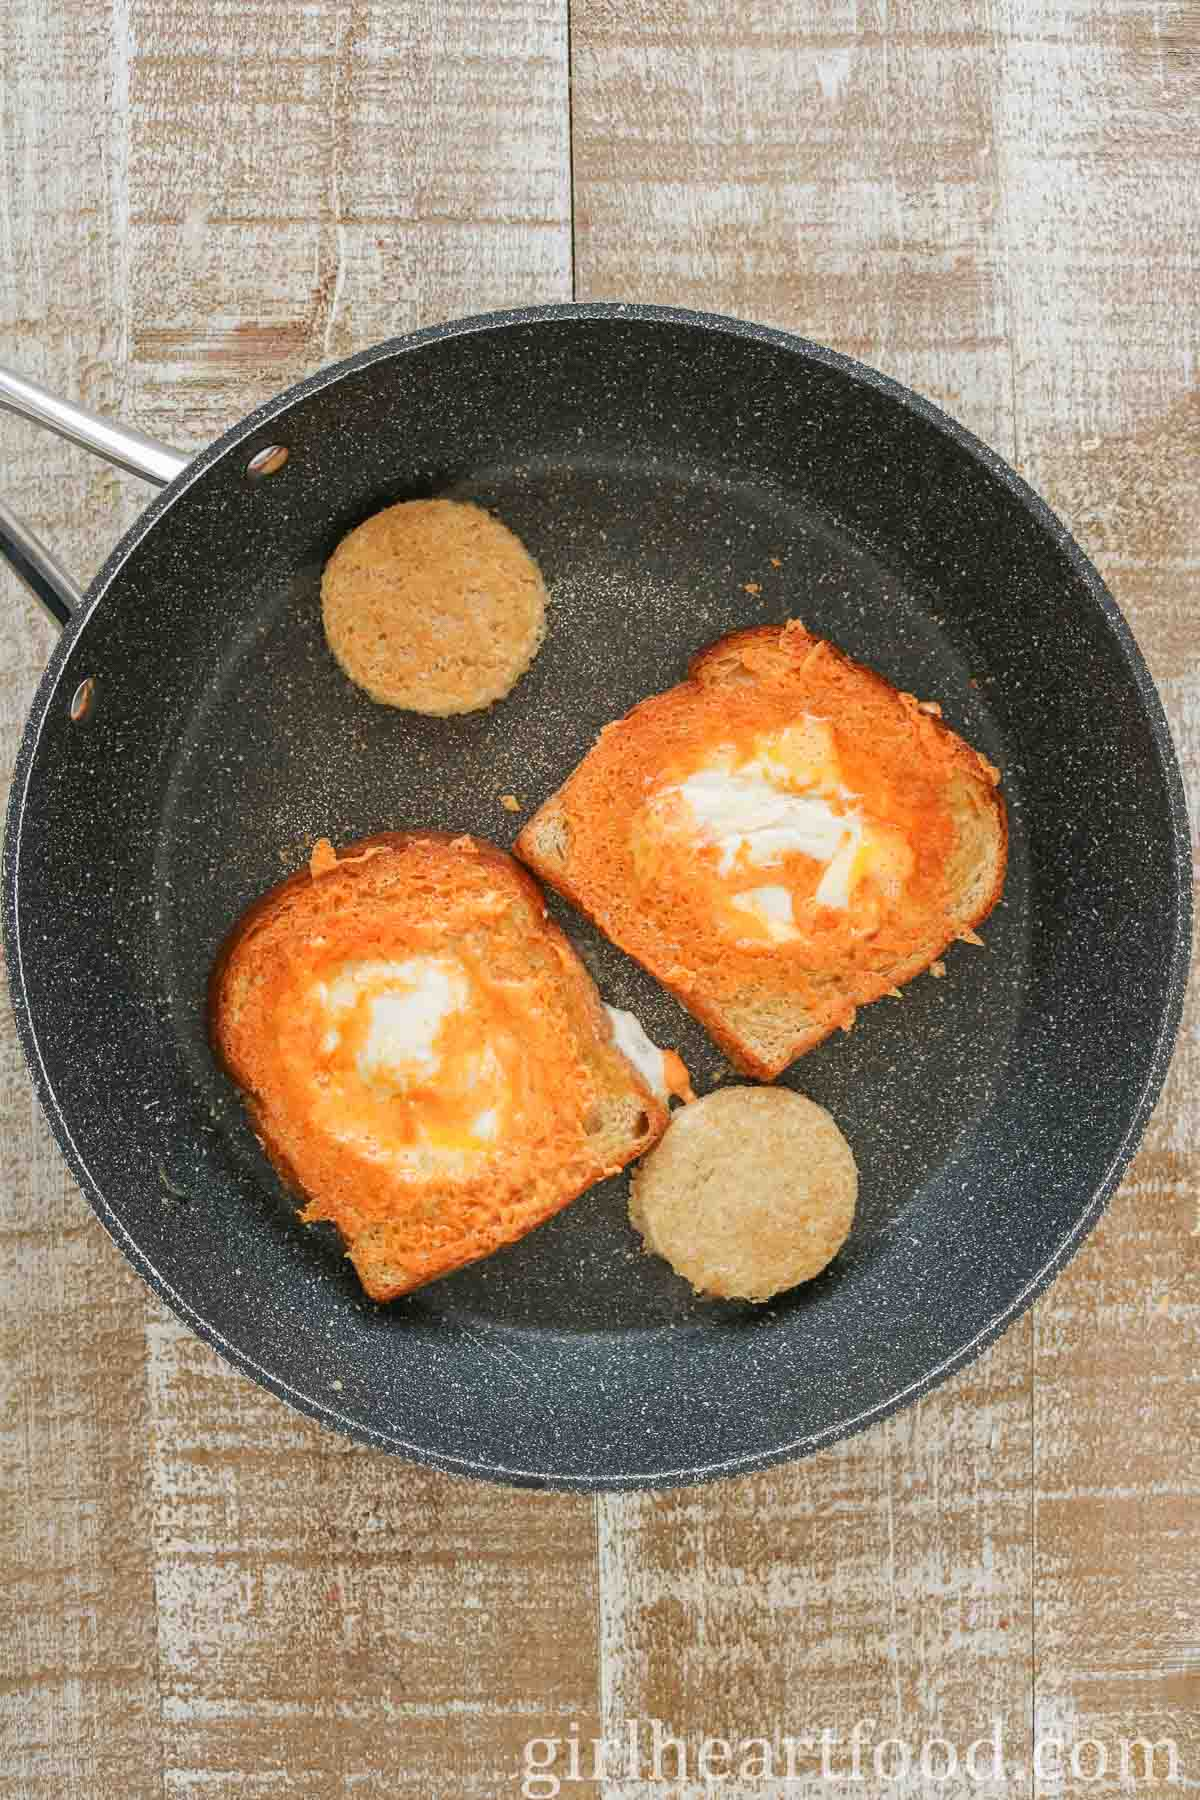 Two cooked portions of egg-in-the-hole toast in a non-stick pan.